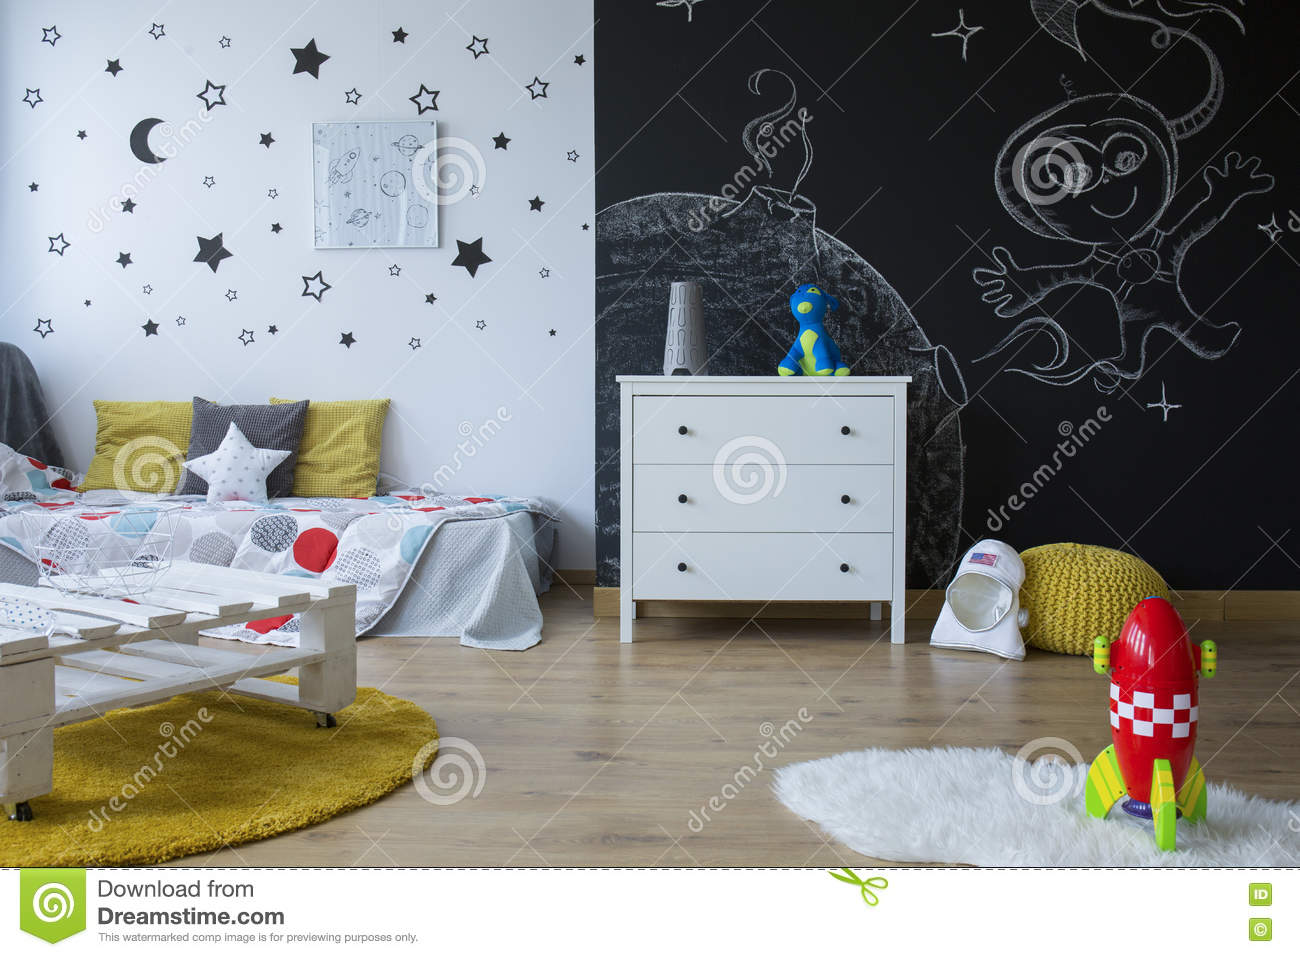 Cozy space themed room